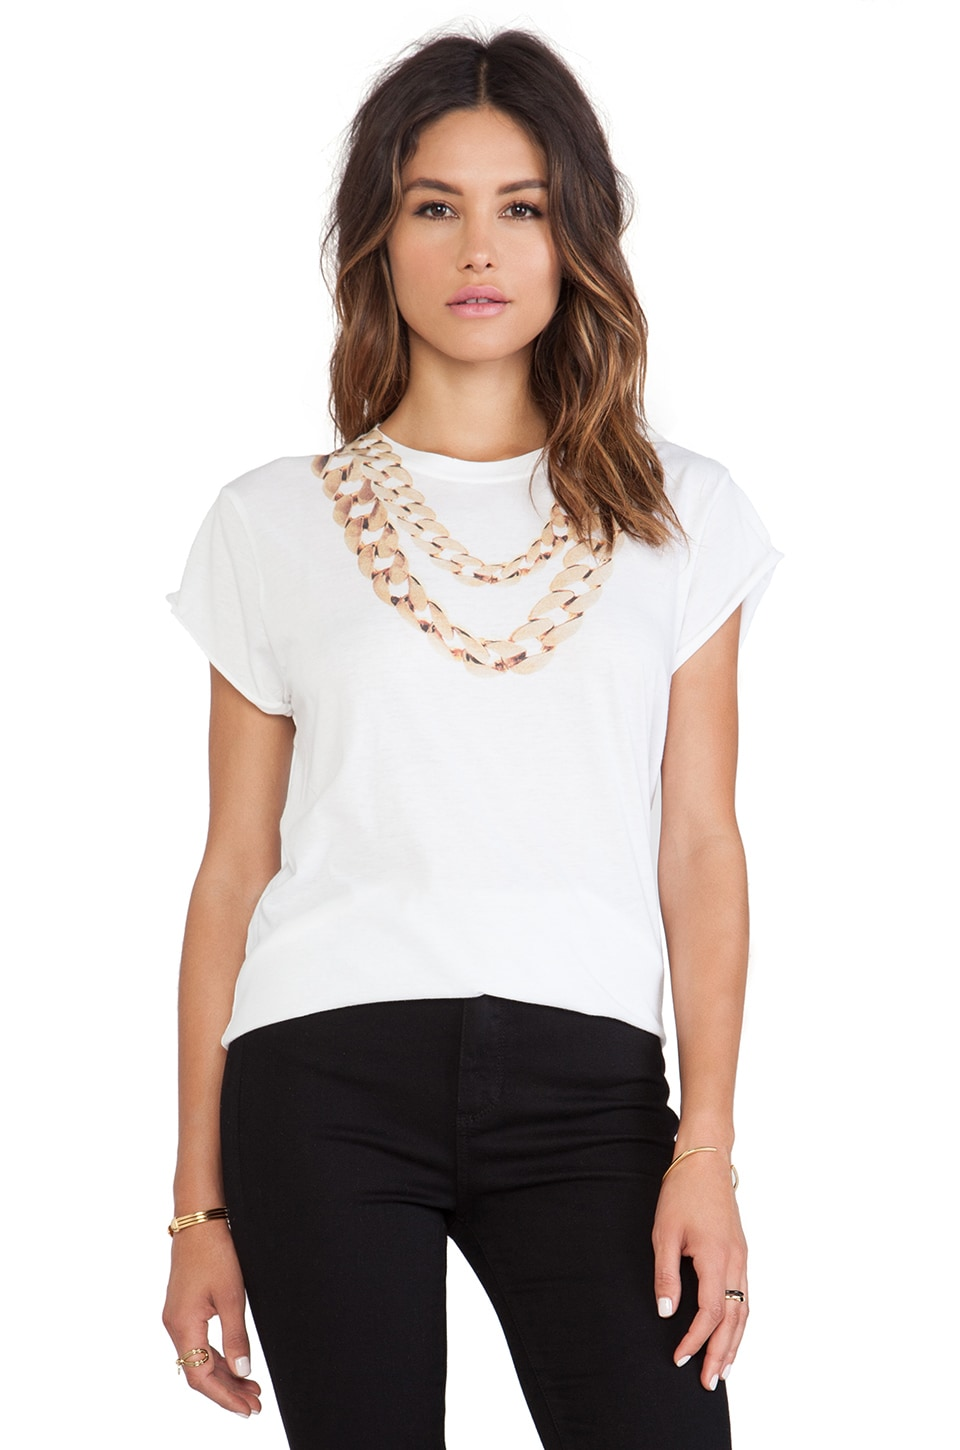 The Laundry Room Cuban Chains Rolling Tee in White